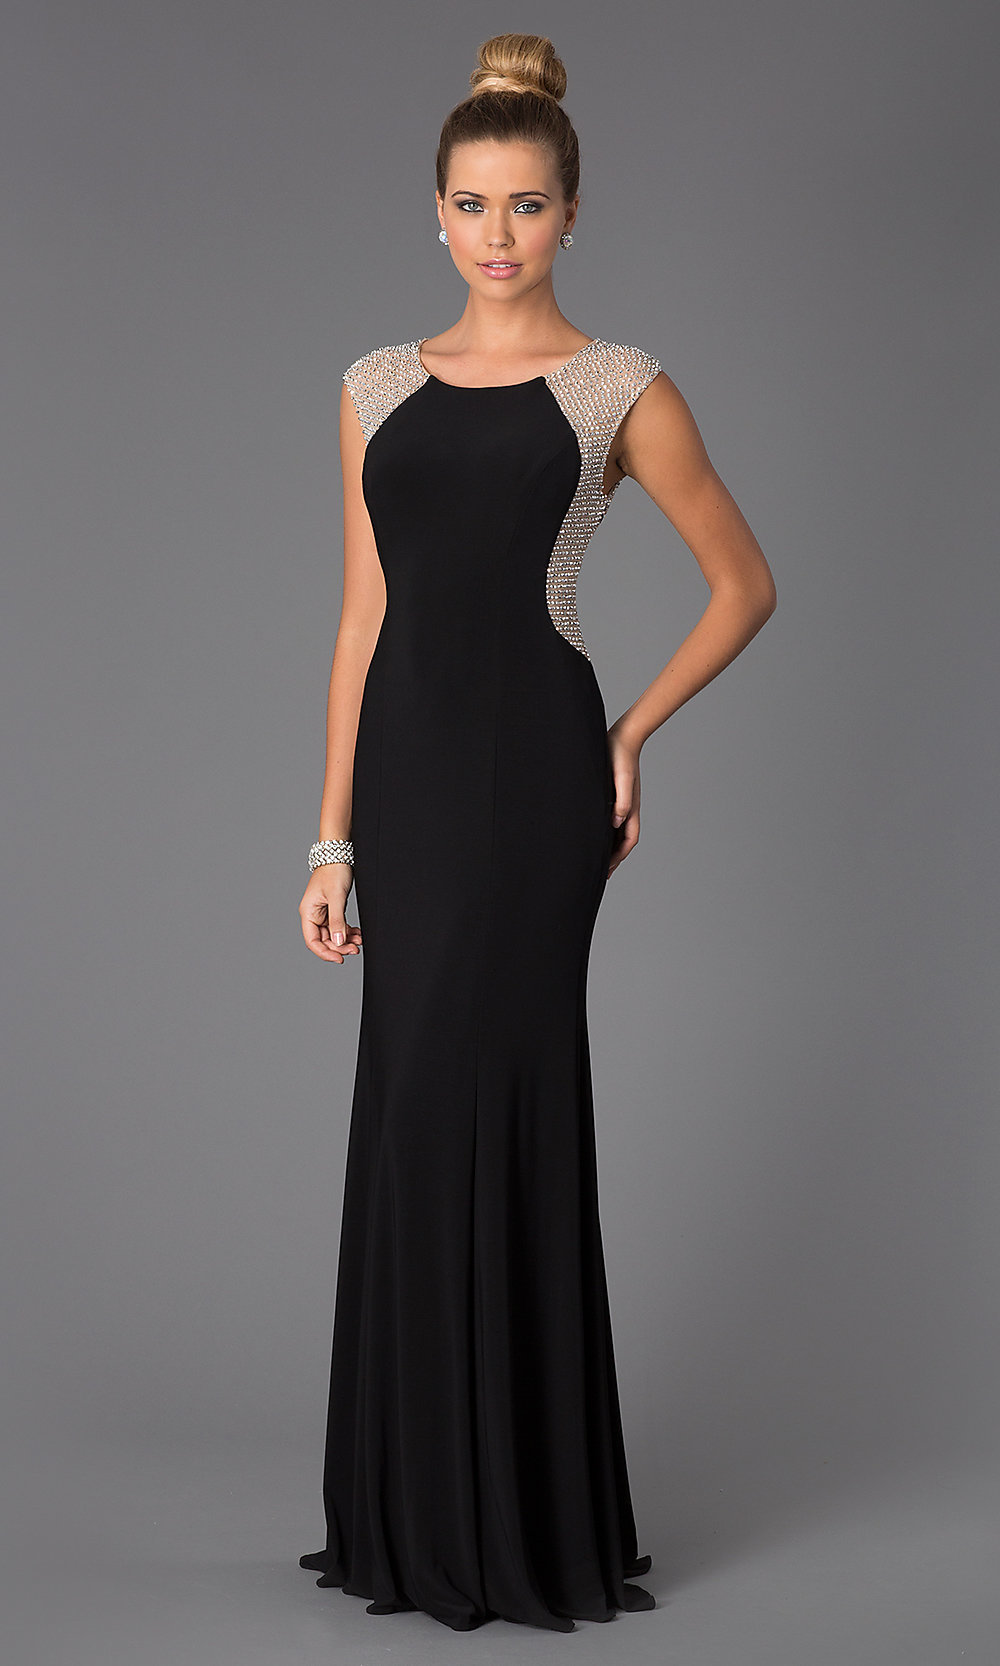 a236fdf9 Xscape Black Formal Dress with Sheer Silver Back